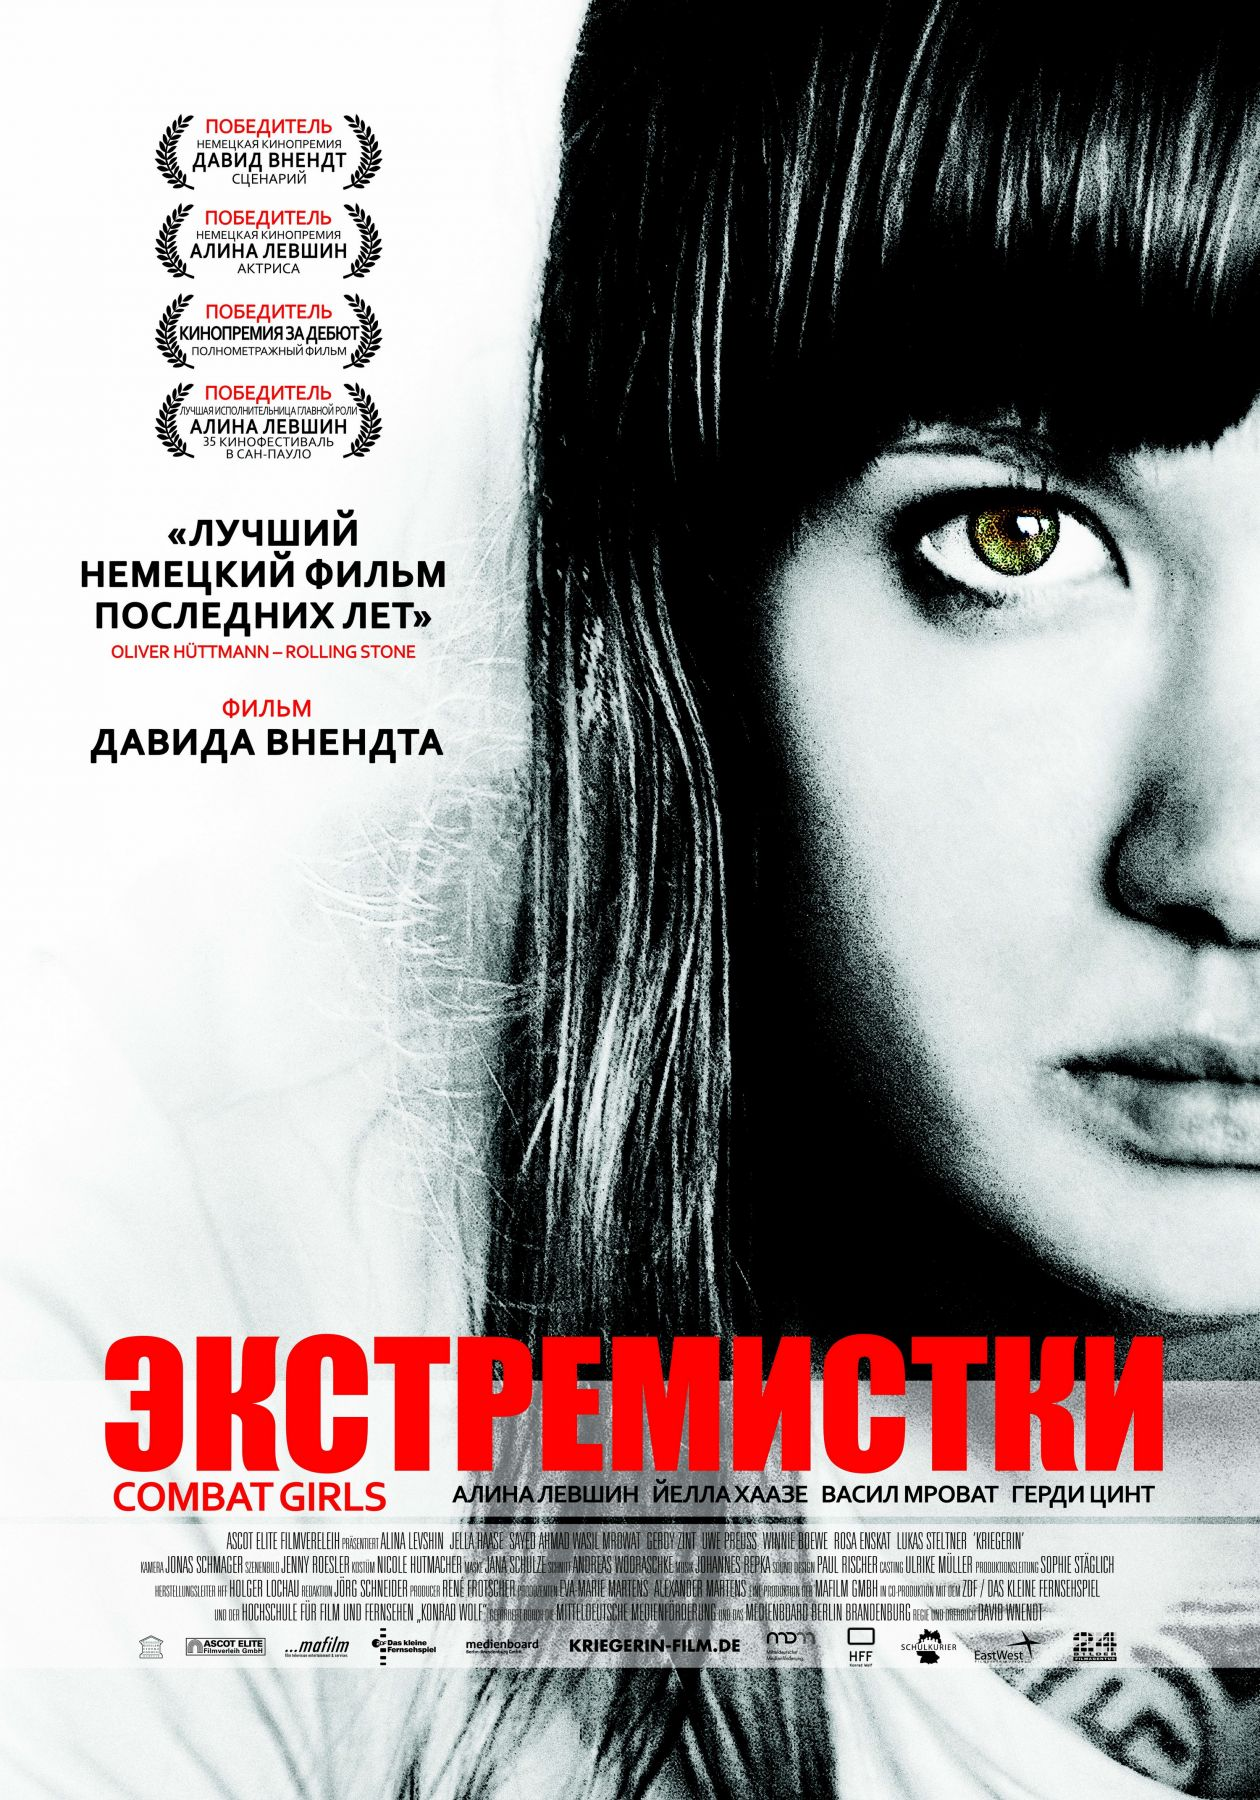 Alina Levshin actress | Combat Girls / Kriegerin / Guerrière / David Wnendt 2013 / MOVIE POSTER AFFICHE FILM / RUSSIA